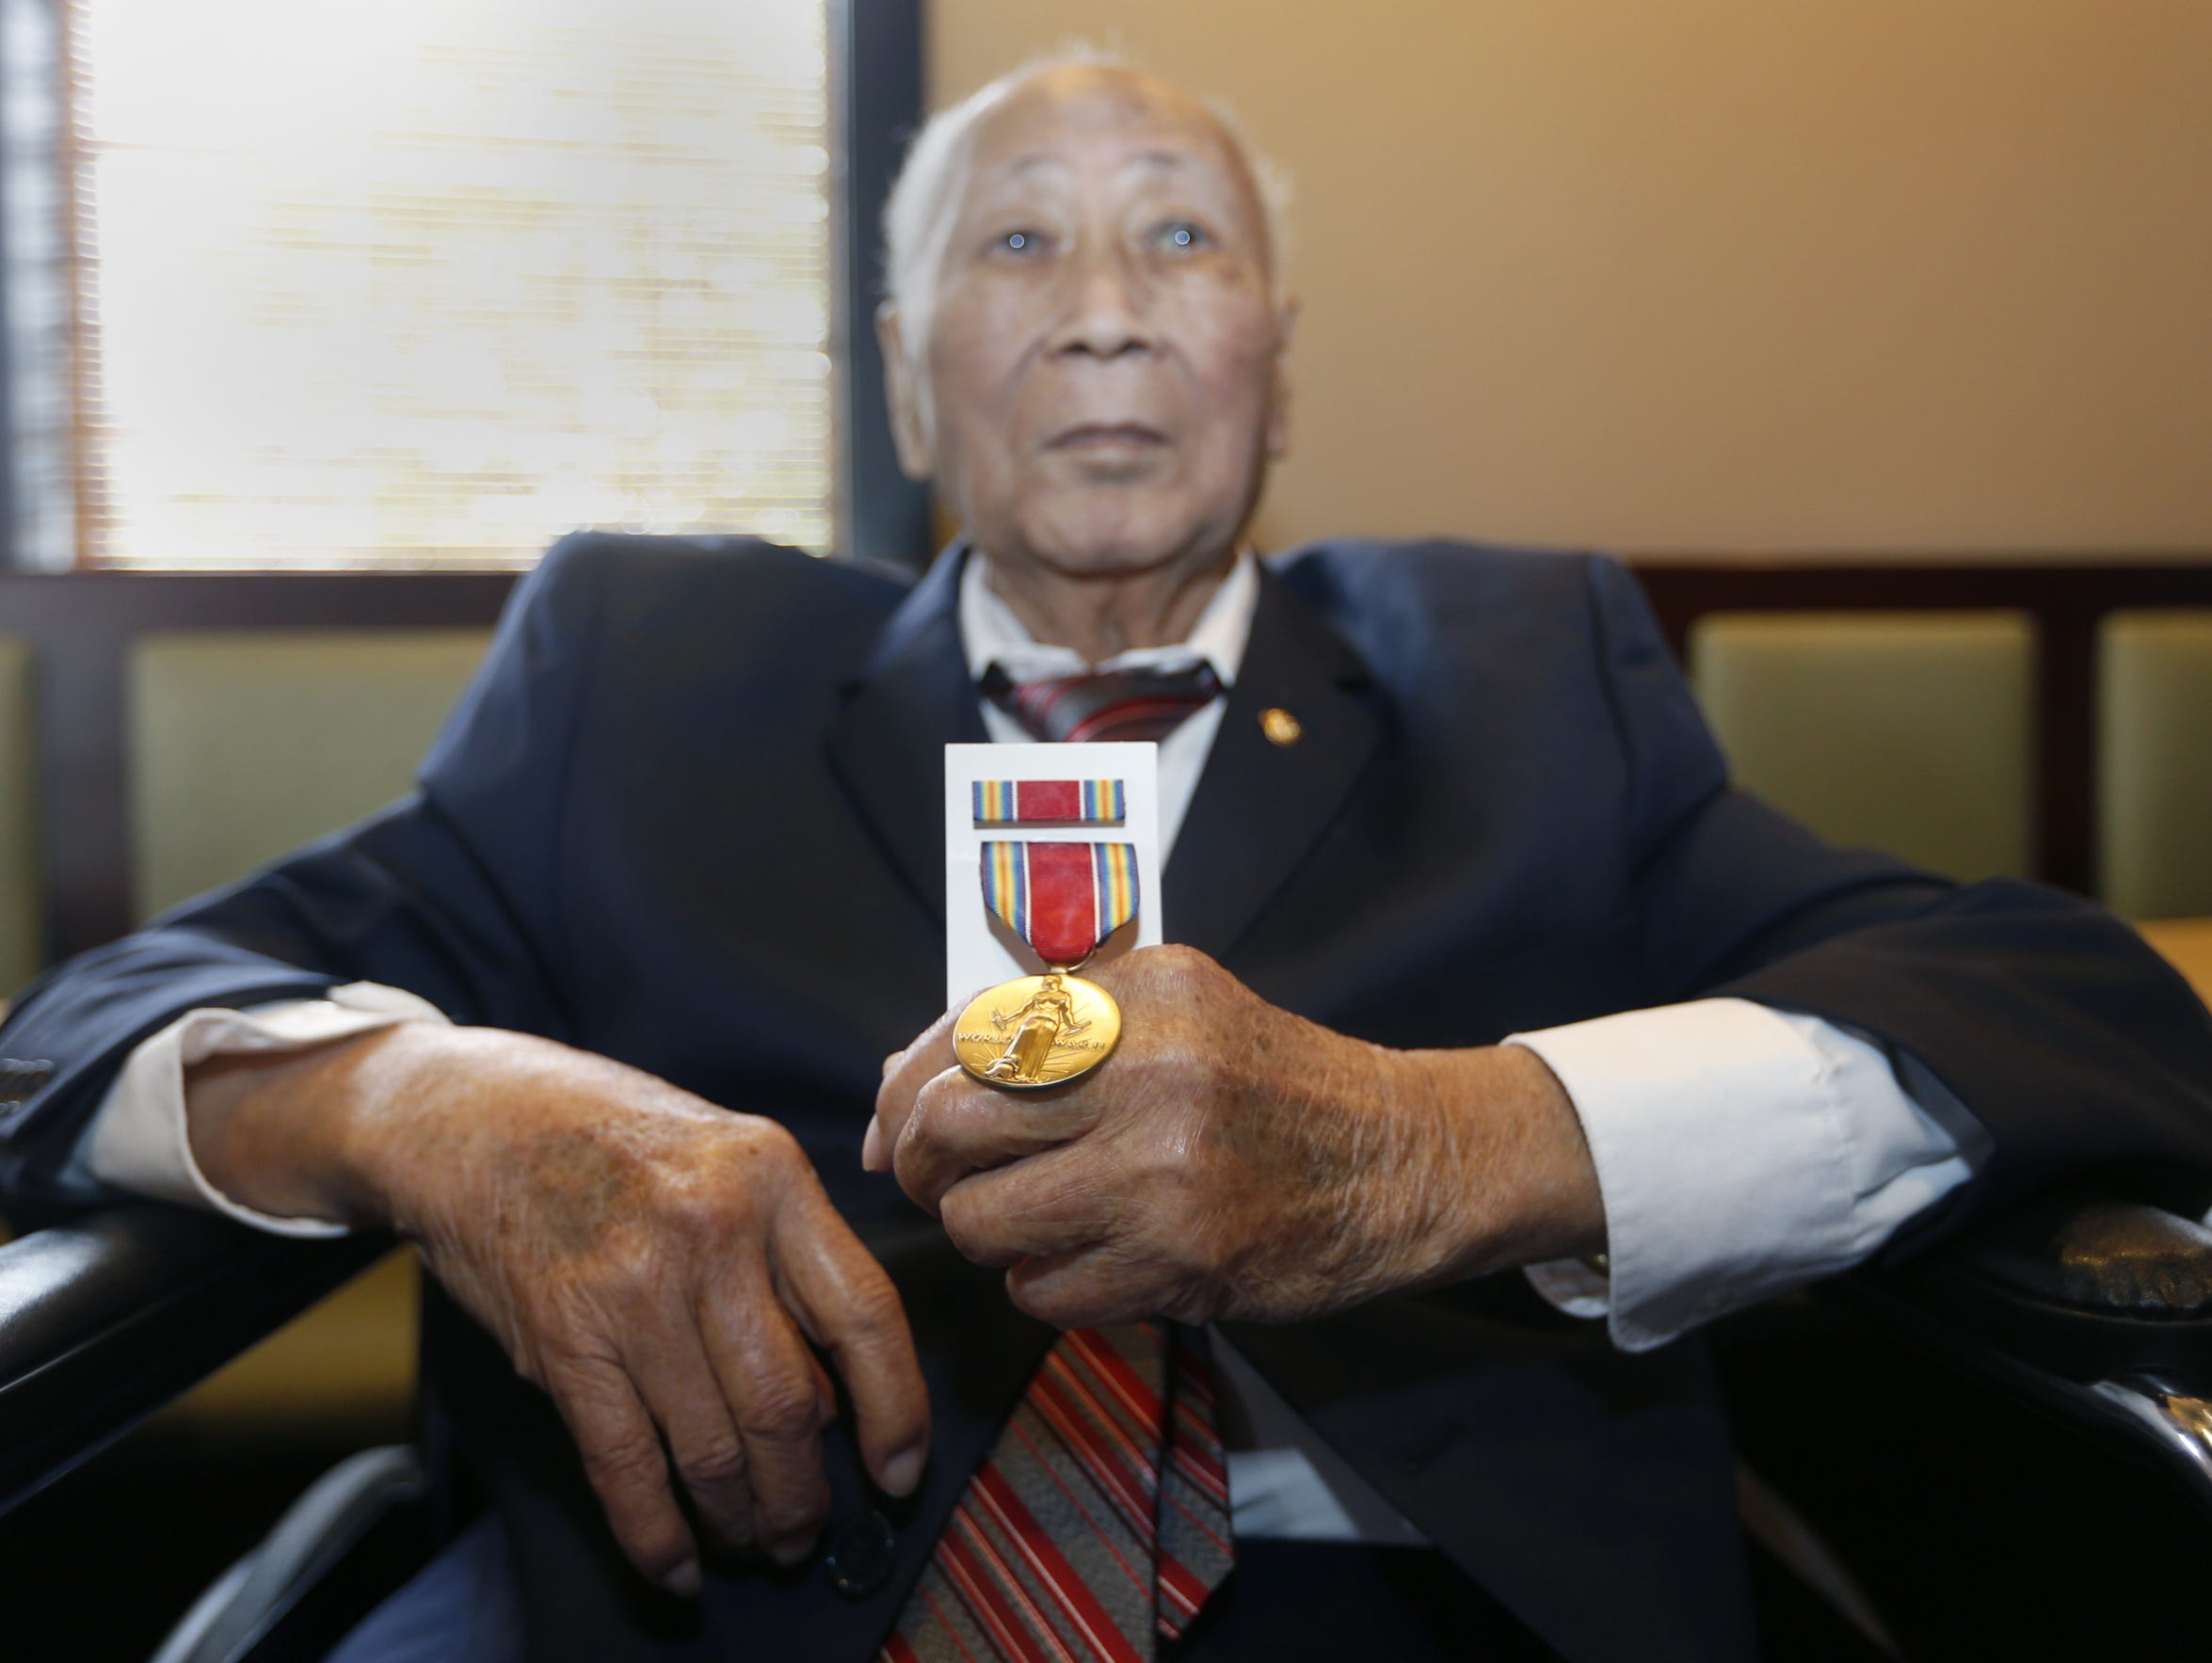 David Leong received replicas of the World War II medals